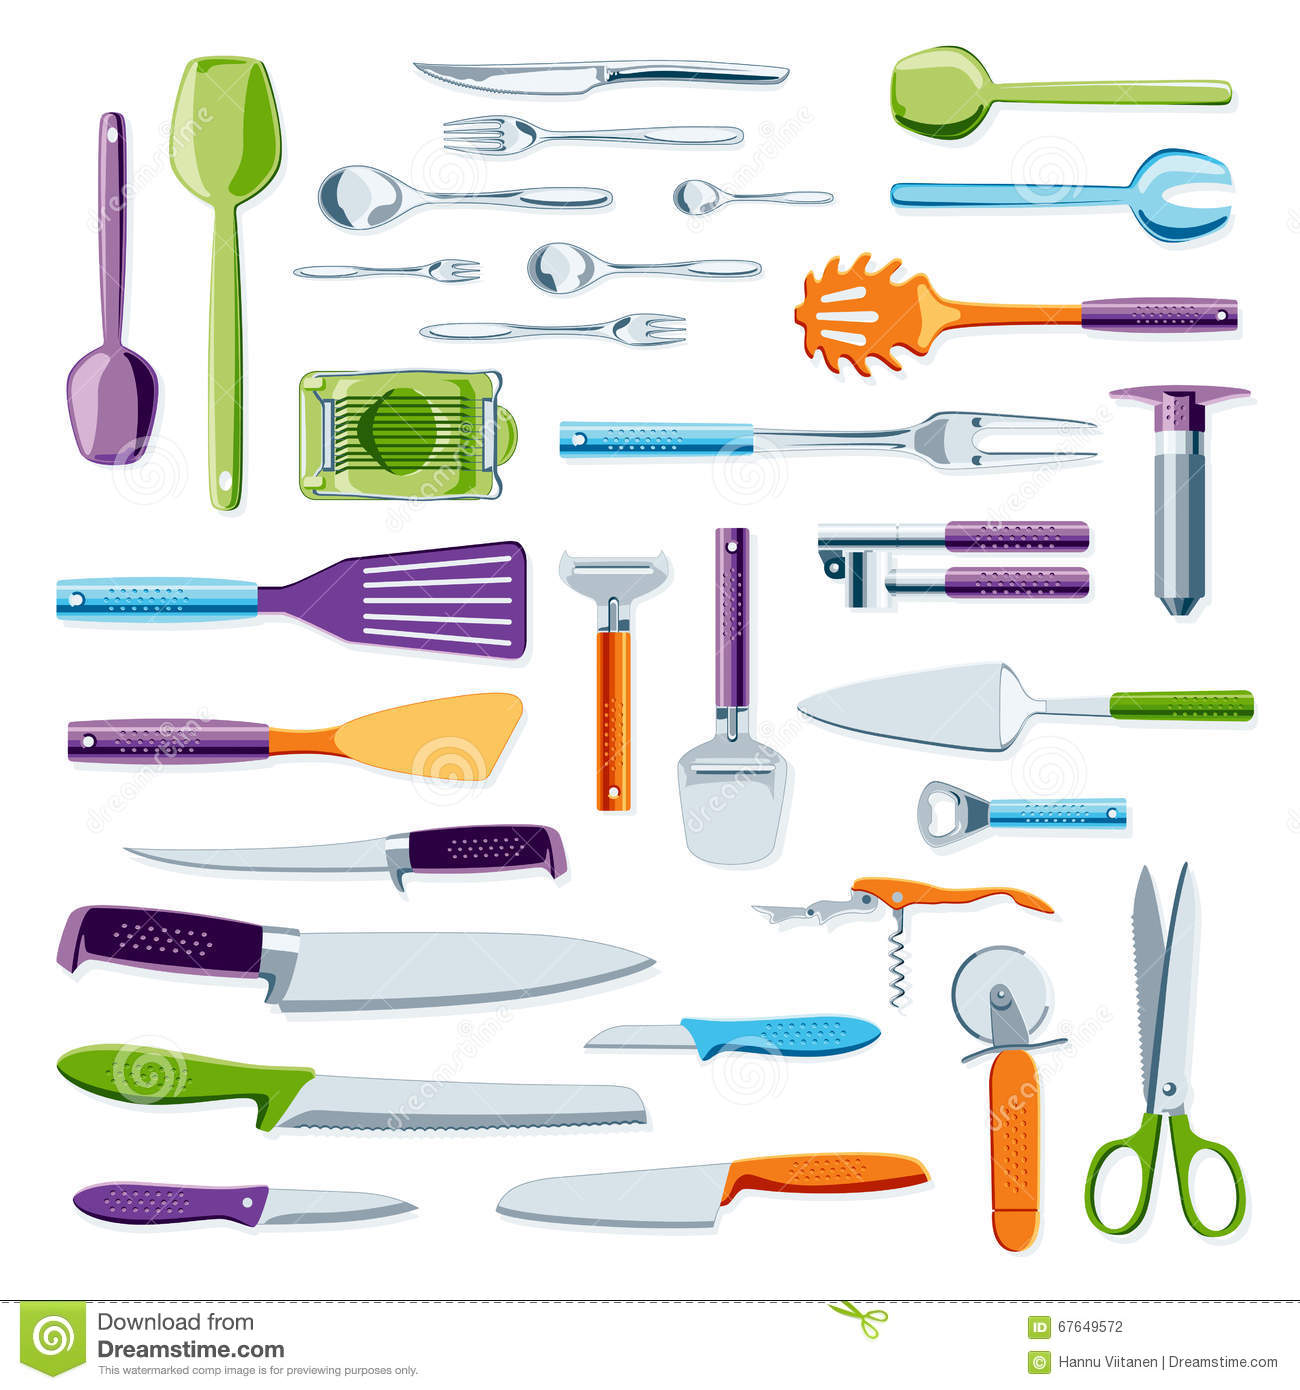 Modern colorful kitchen equipment stock photo image for Colorful kitchen tools